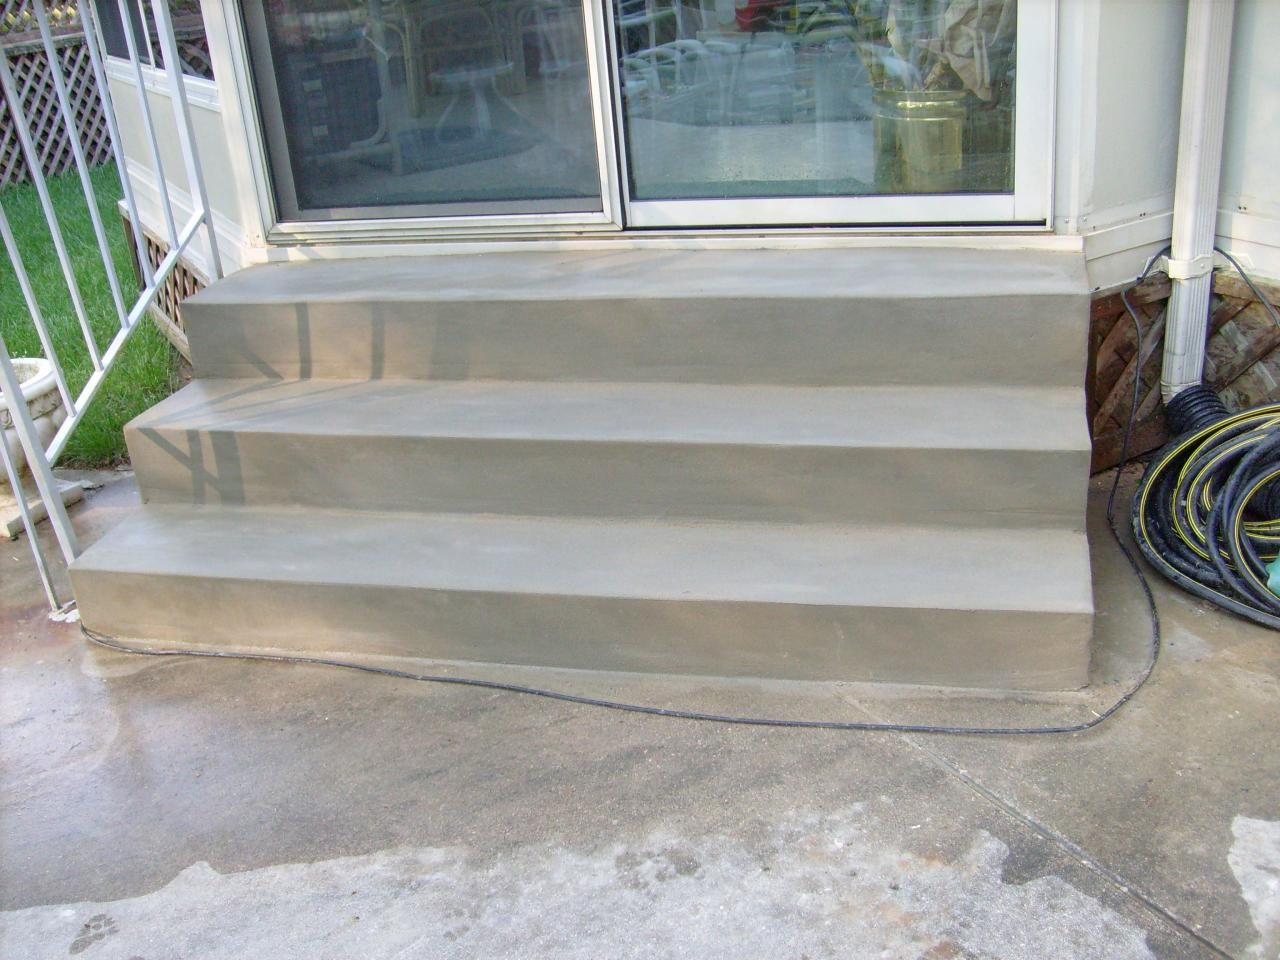 Best Back Door Steps Back Door To Patio Entrance Steps Deck 640 x 480